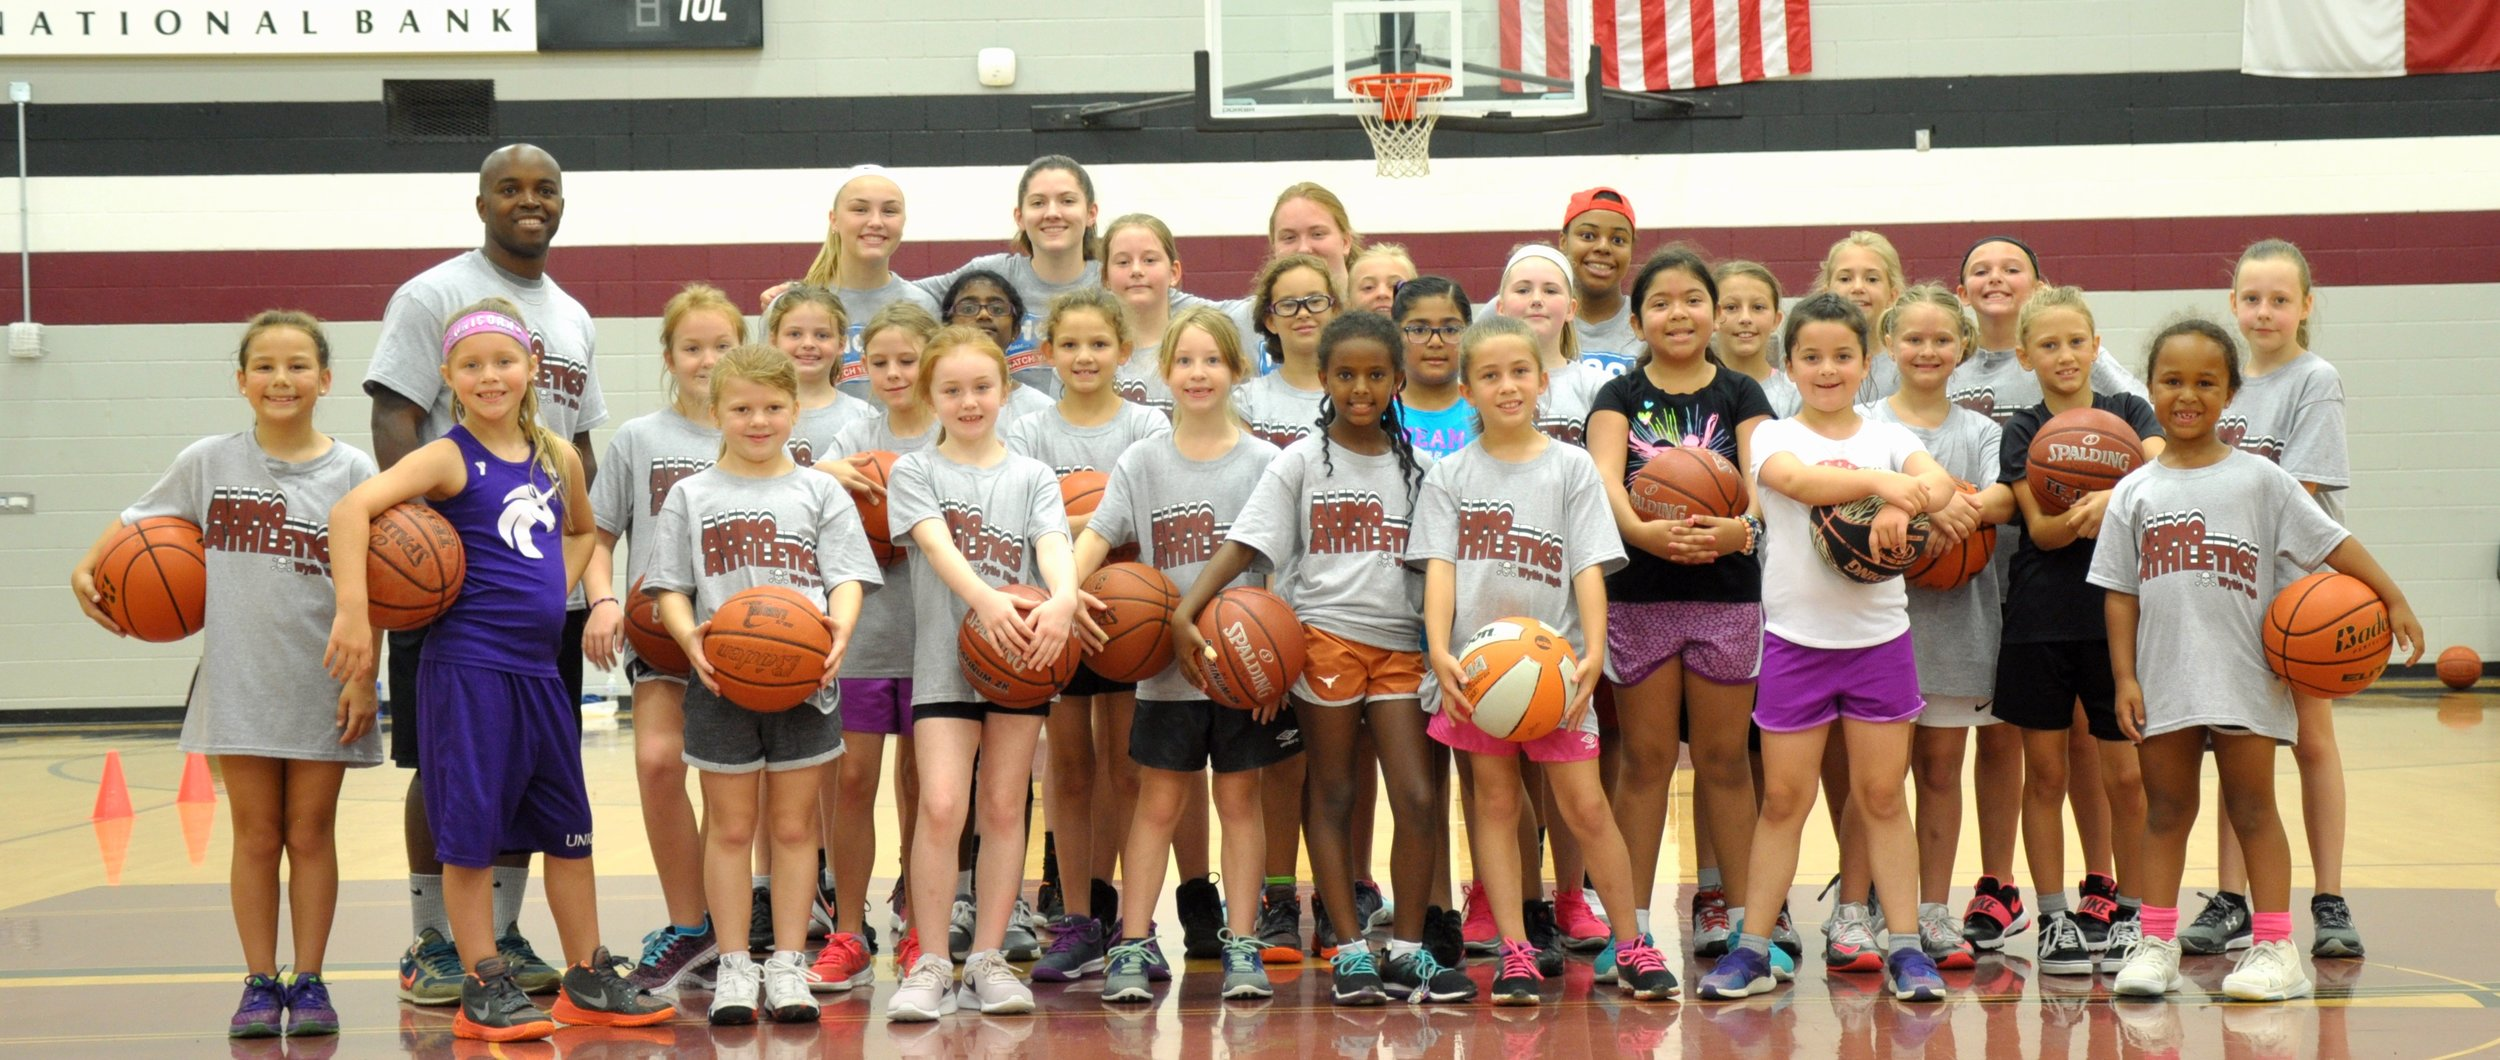 Campers get ready to learn more about the game of basketball